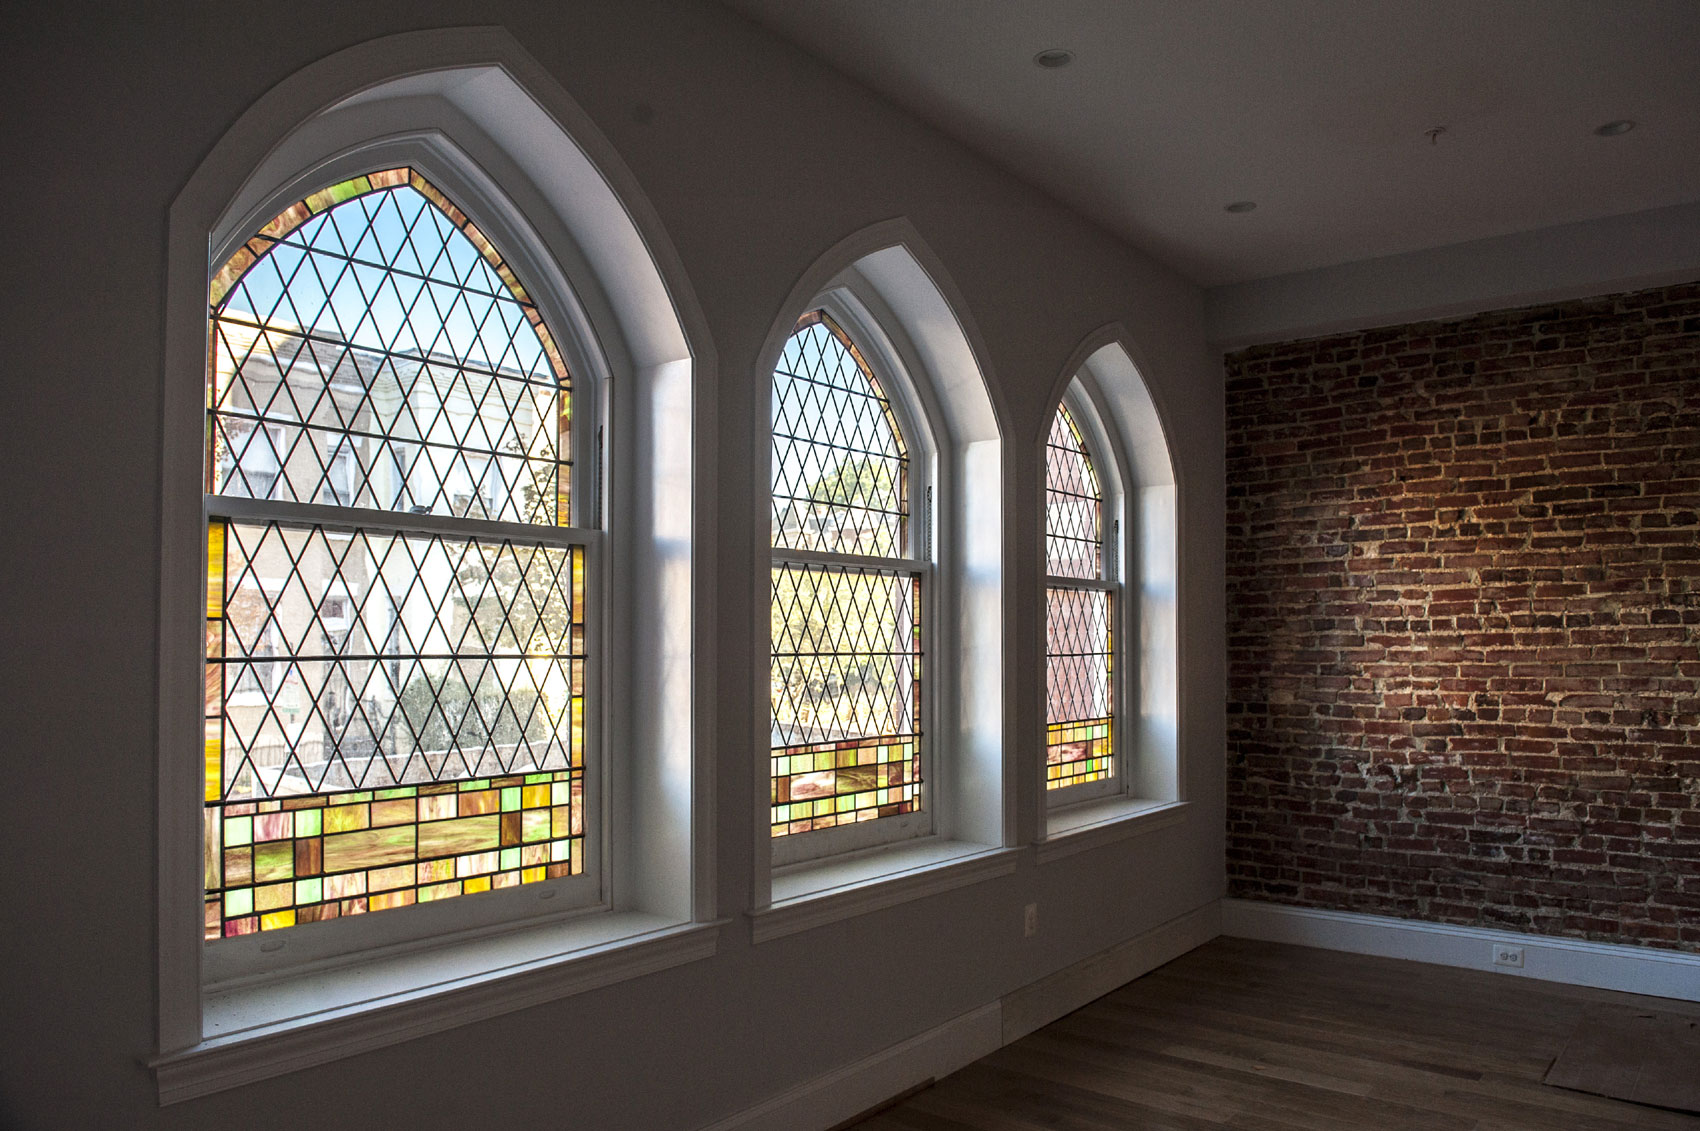 These dramatic Gothic-arched, stained- and leaded-glass windows impart an ethereal aura, creating an unexpected twist on an otherwise chic, modernist aesthetic.